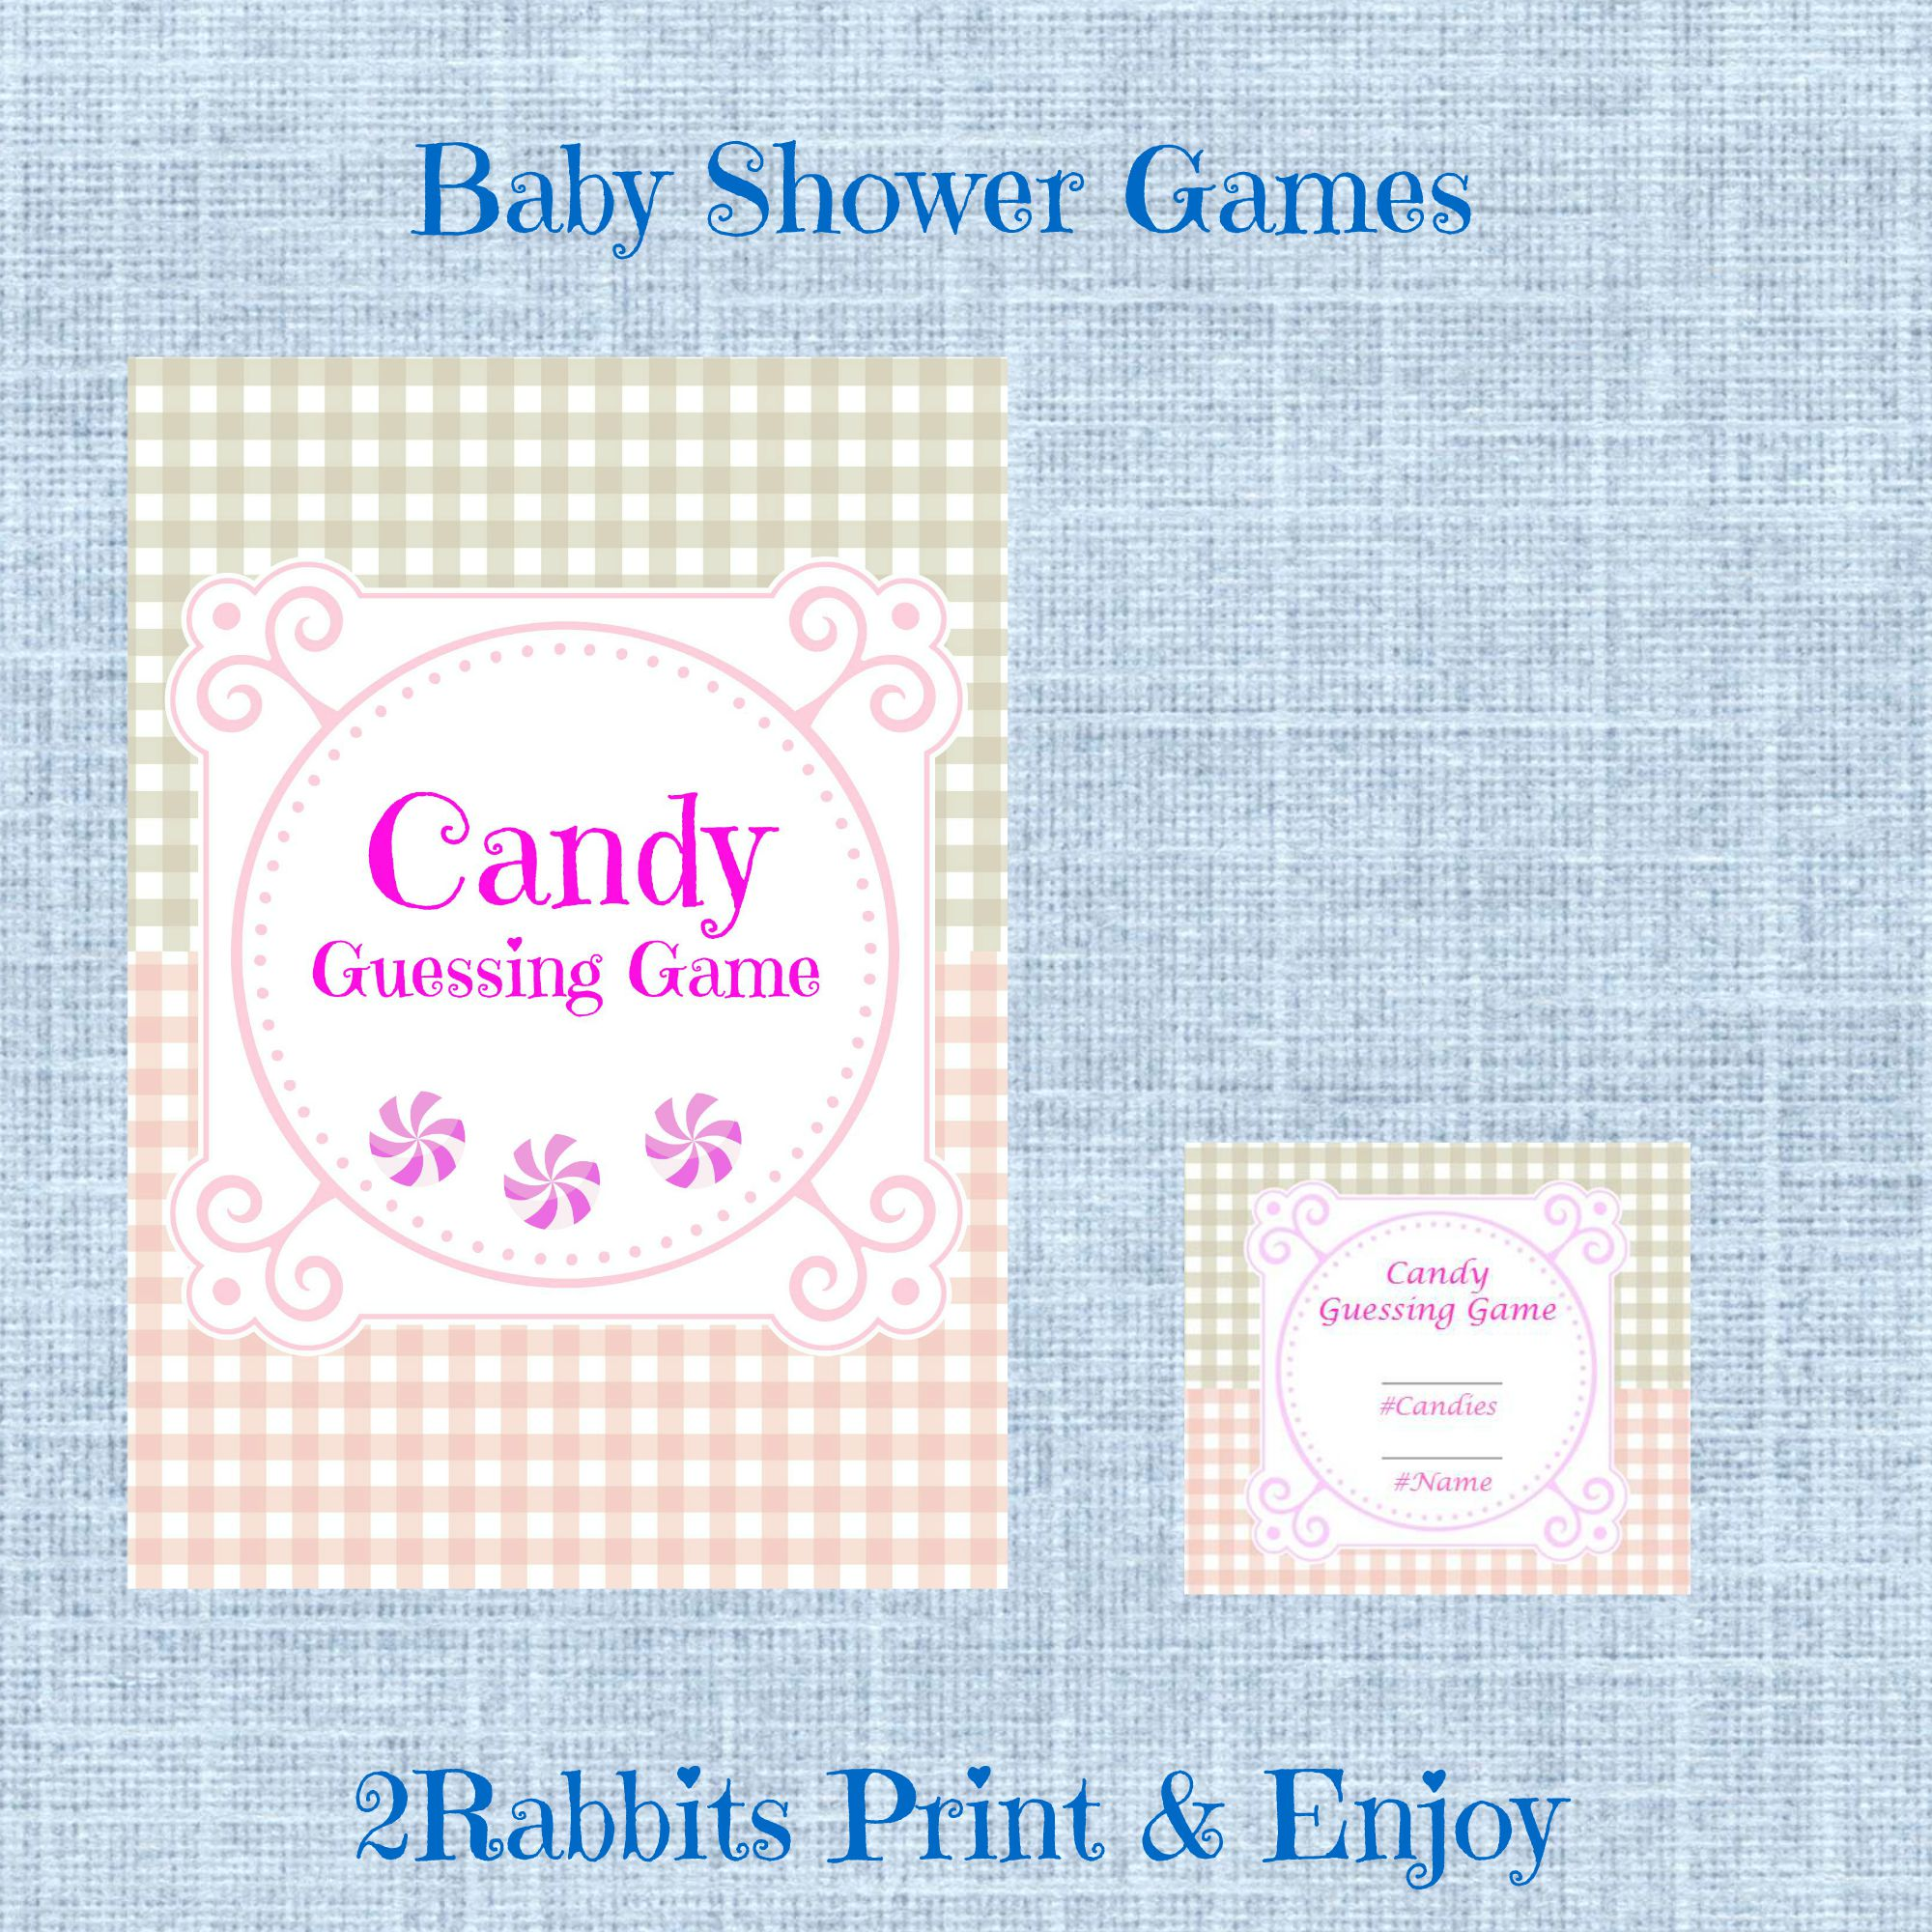 fun baby shower games my practical baby shower guide